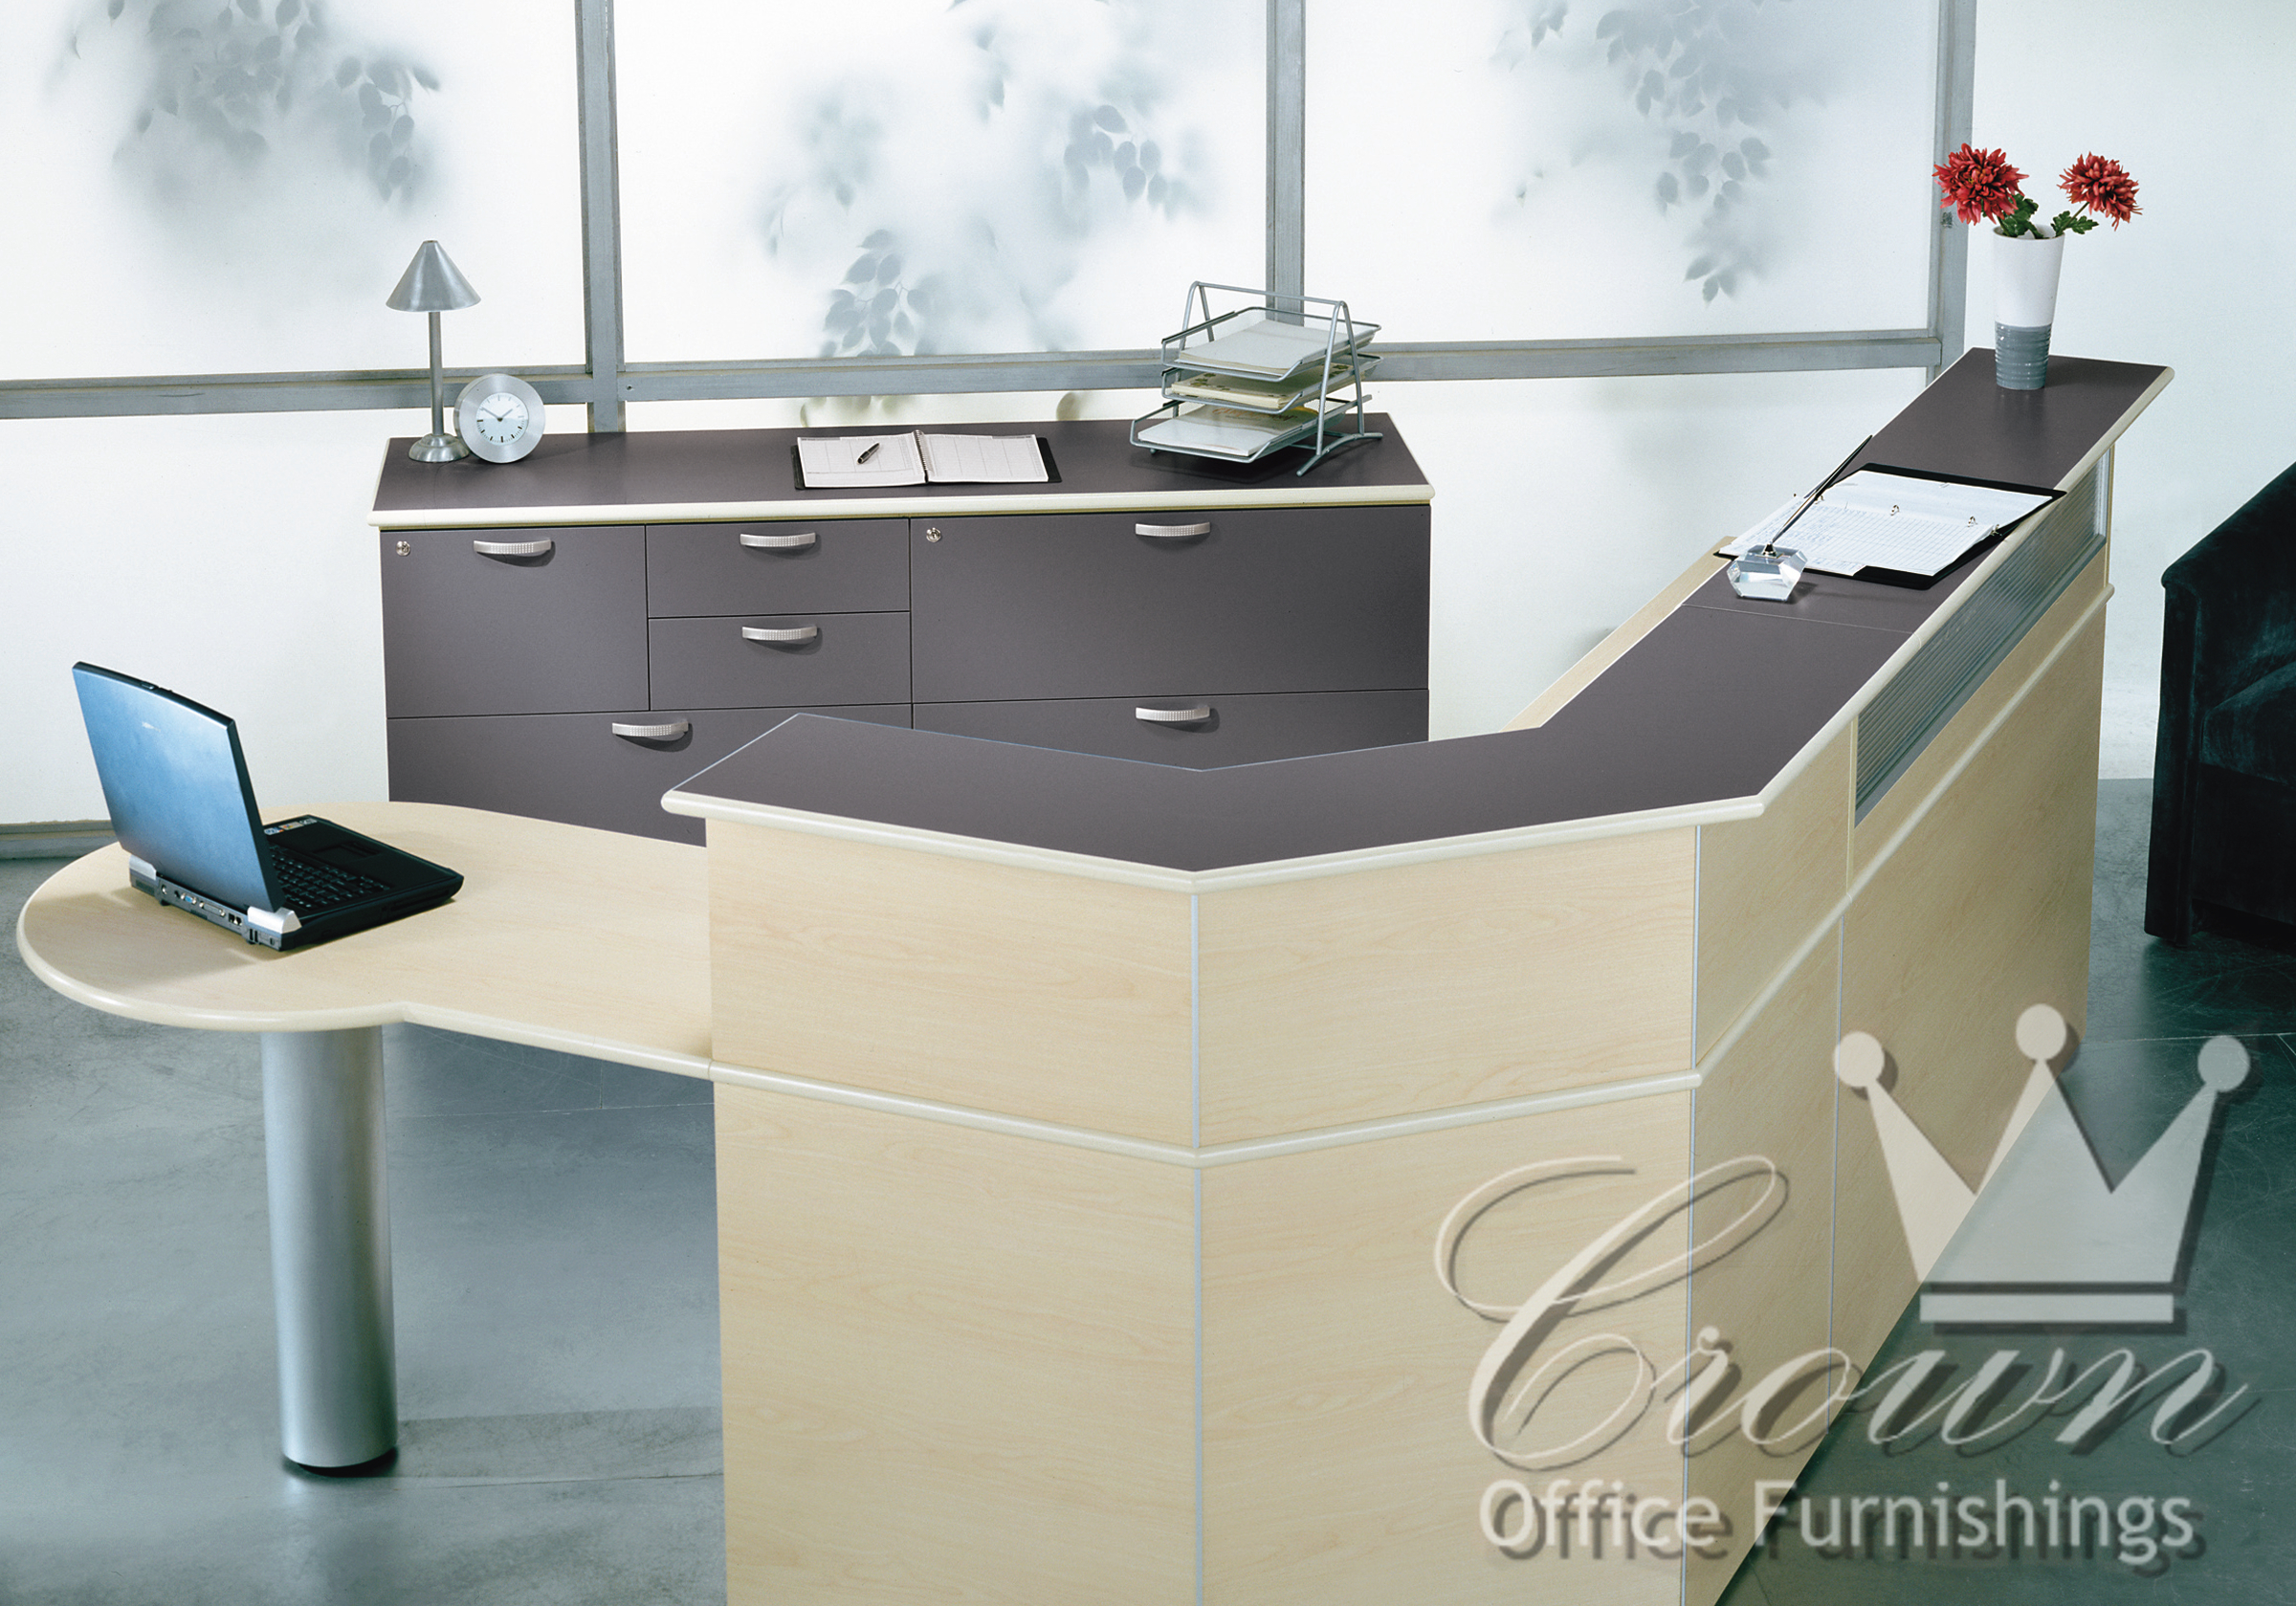 Transitional Reception Desks Bring Life And Color To Any Area Or Office Space Standing Height Transaction Counters Optional Floating Glass Tops